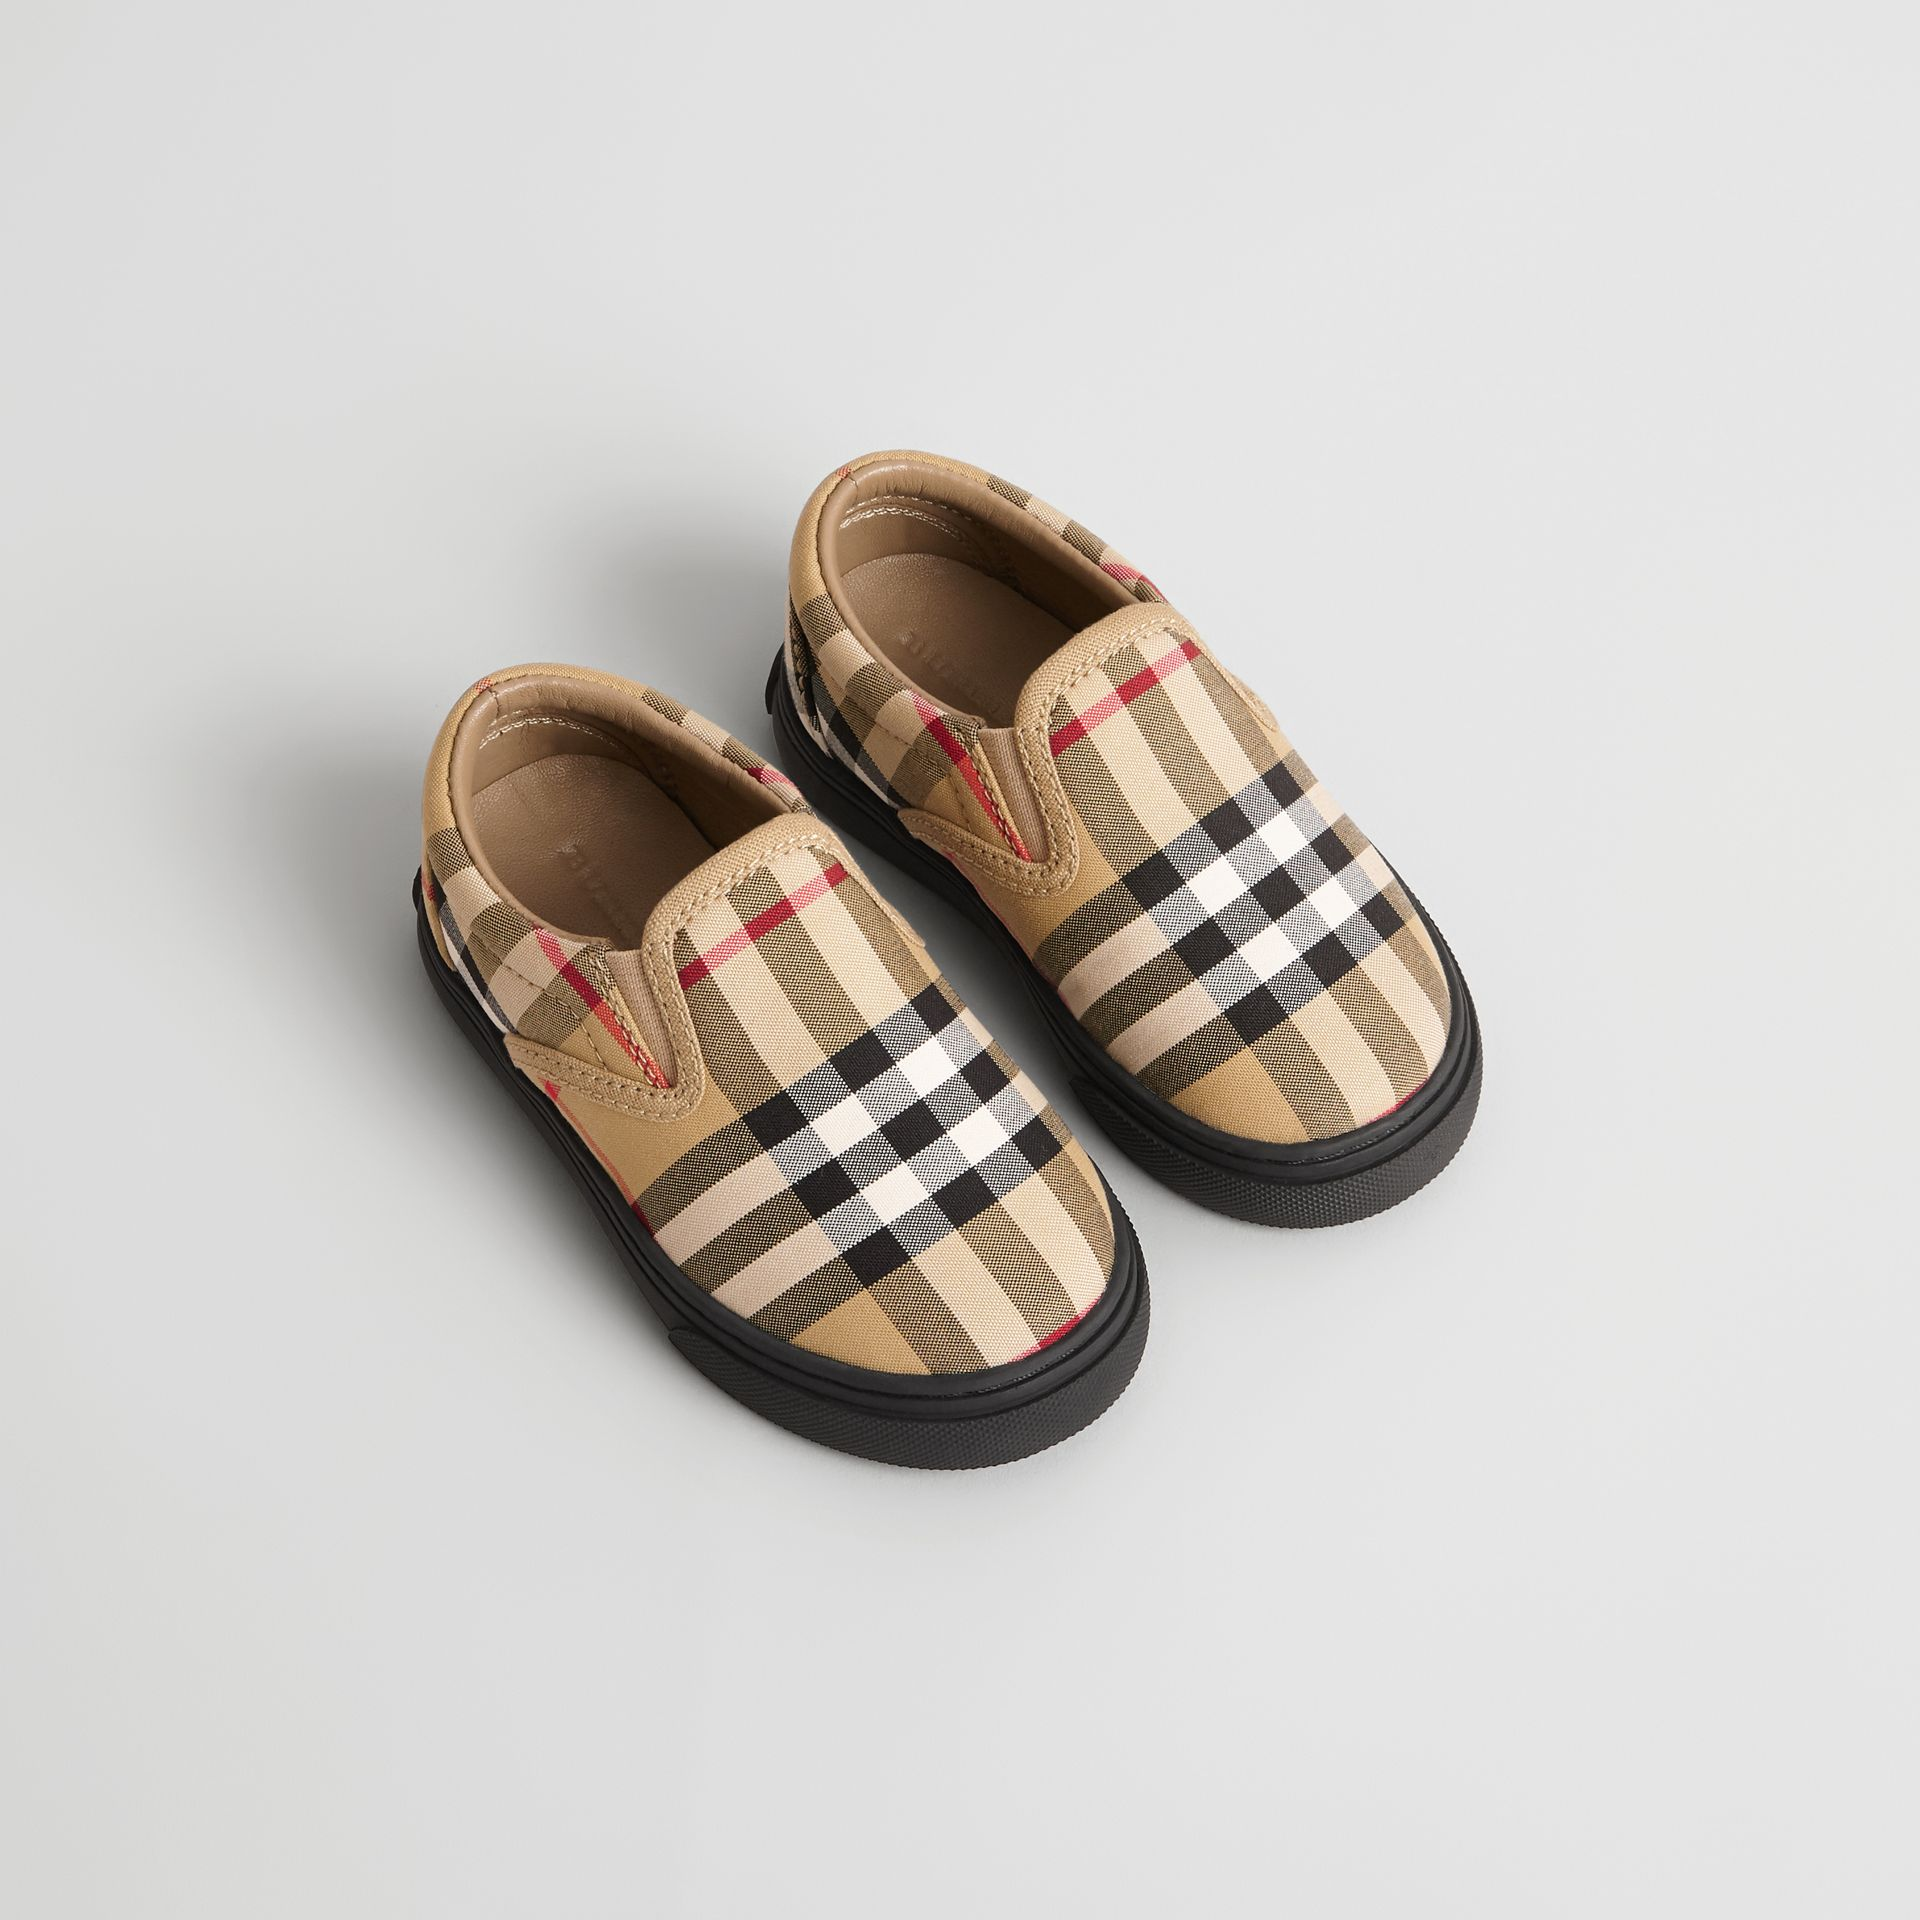 Sneakers sans lacets en cuir à motif Vintage check (Jaune Antique/noir) - Enfant | Burberry Canada - photo de la galerie 0